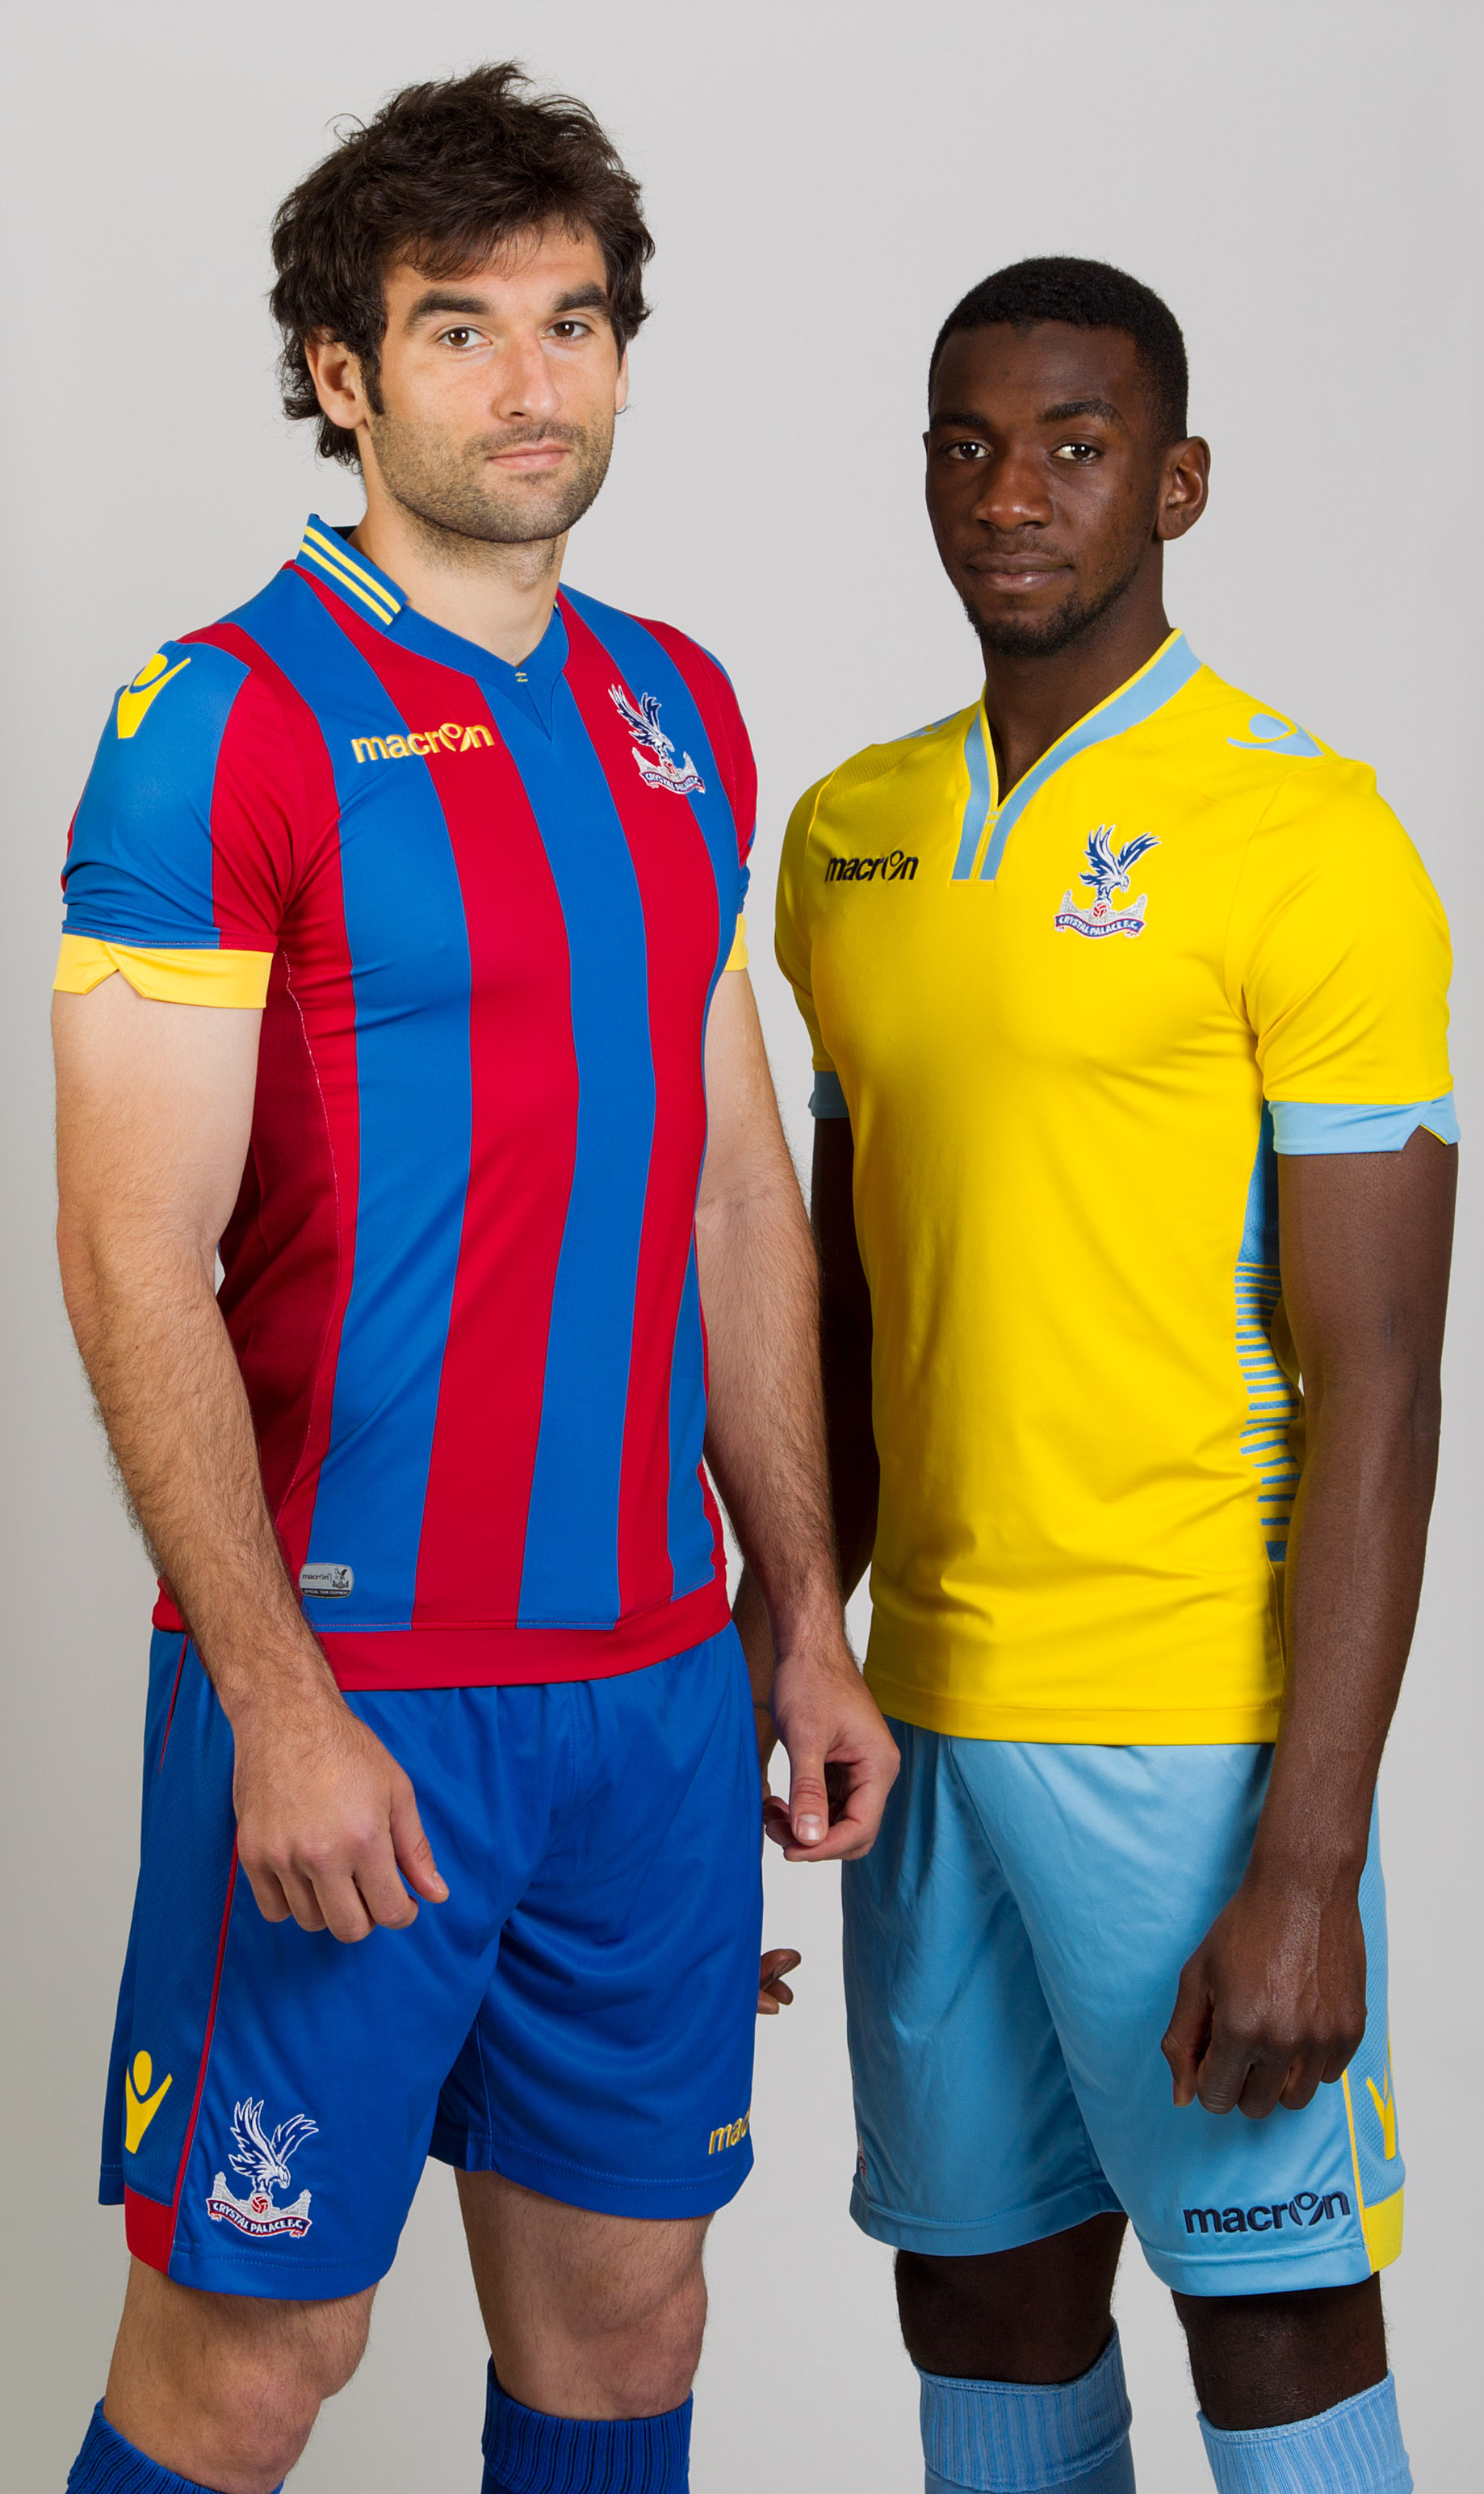 Crystal Palace's new kit for 2014/2015 - what do you think?